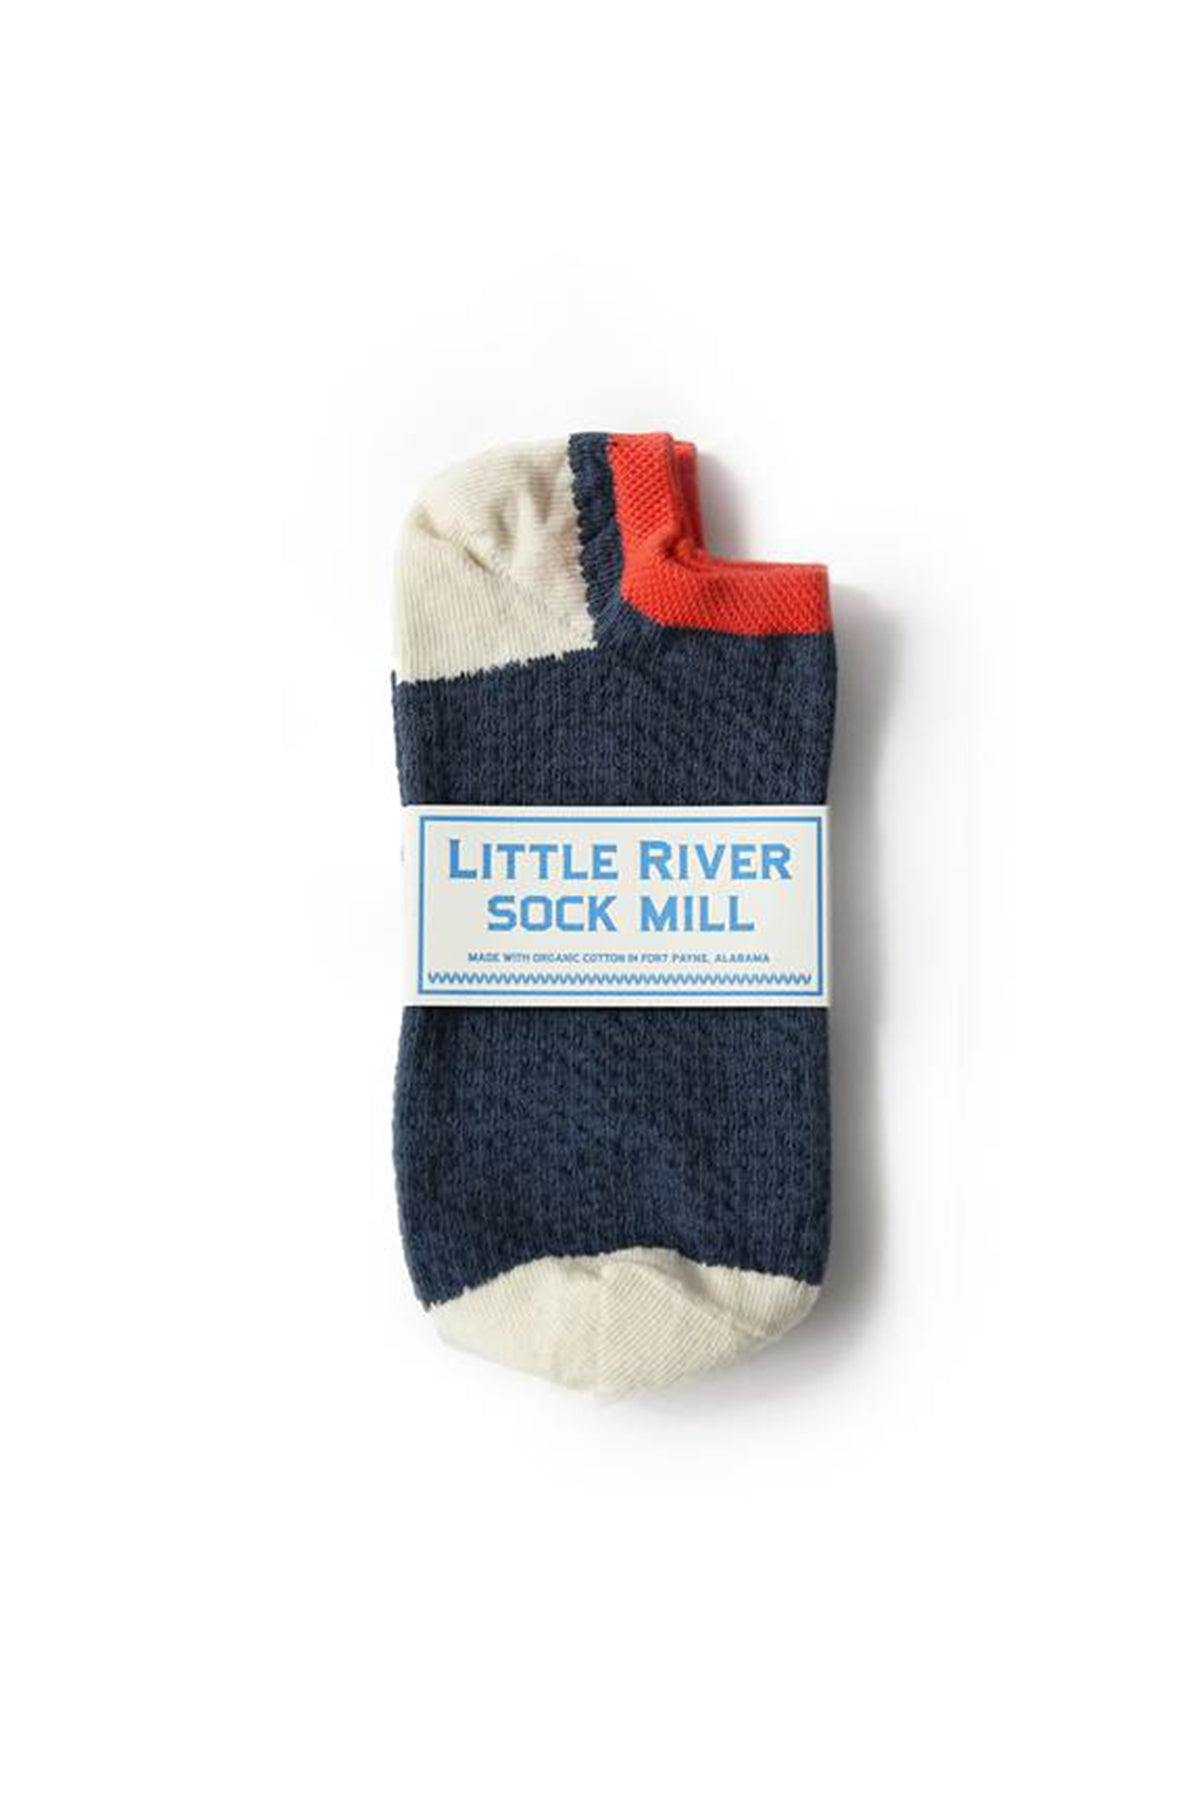 PIN-TUCK FOOTIE SOCK BY LITTLE RIVER SOCK MILL